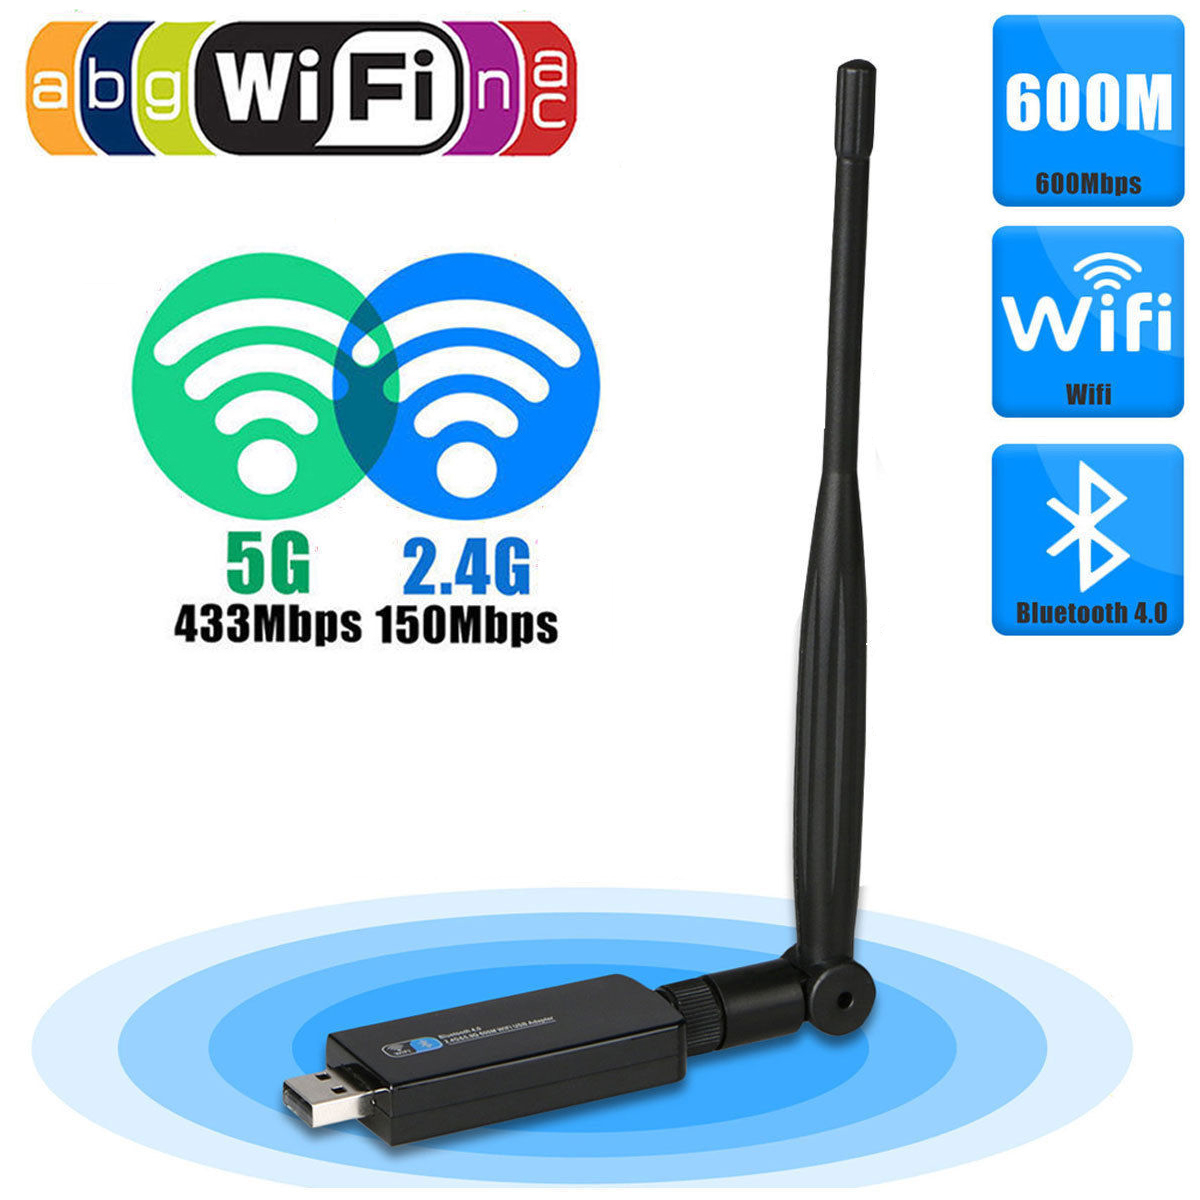 Bluetooth 4.0/600Mbps Dual Band Wifi Router Wireless Network Repeater Adapter Dongle Transmitter